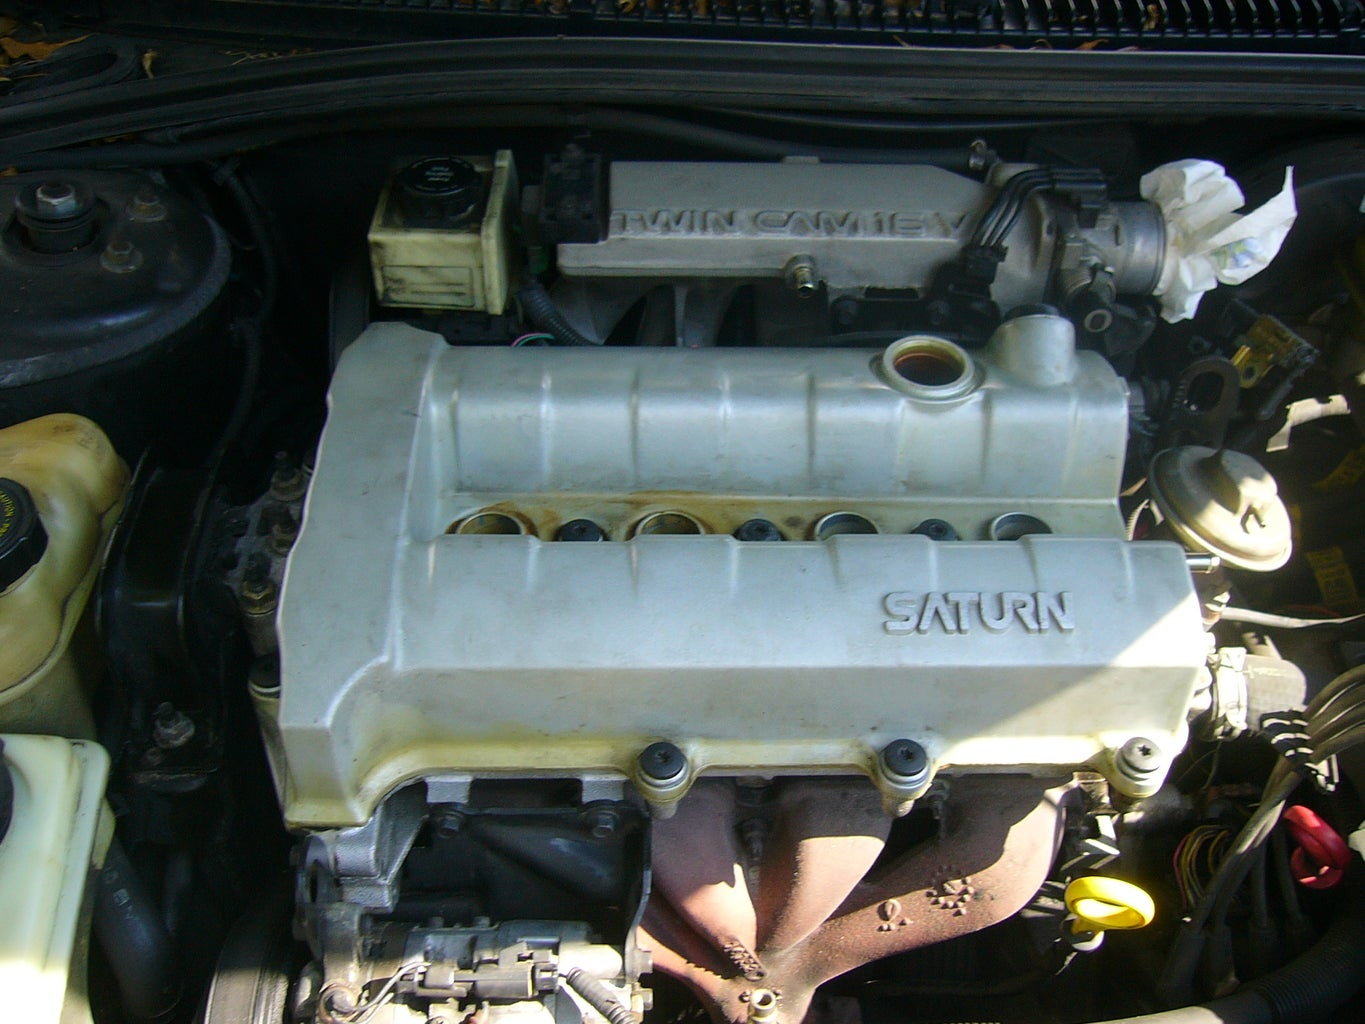 Put the Valve Cover Back On